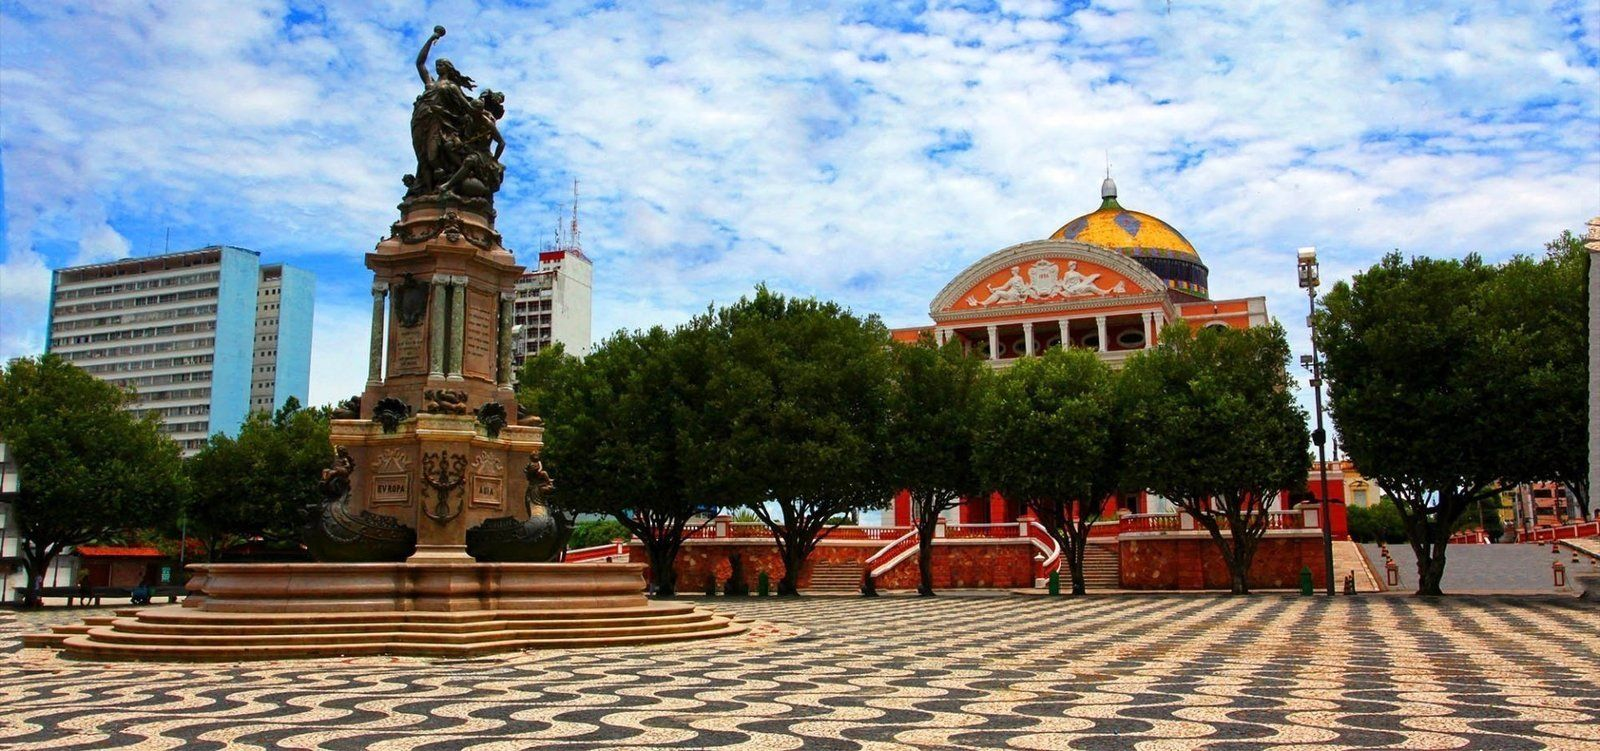 Travel Blog: Manaus, Amazon River and Jungle in Brazil